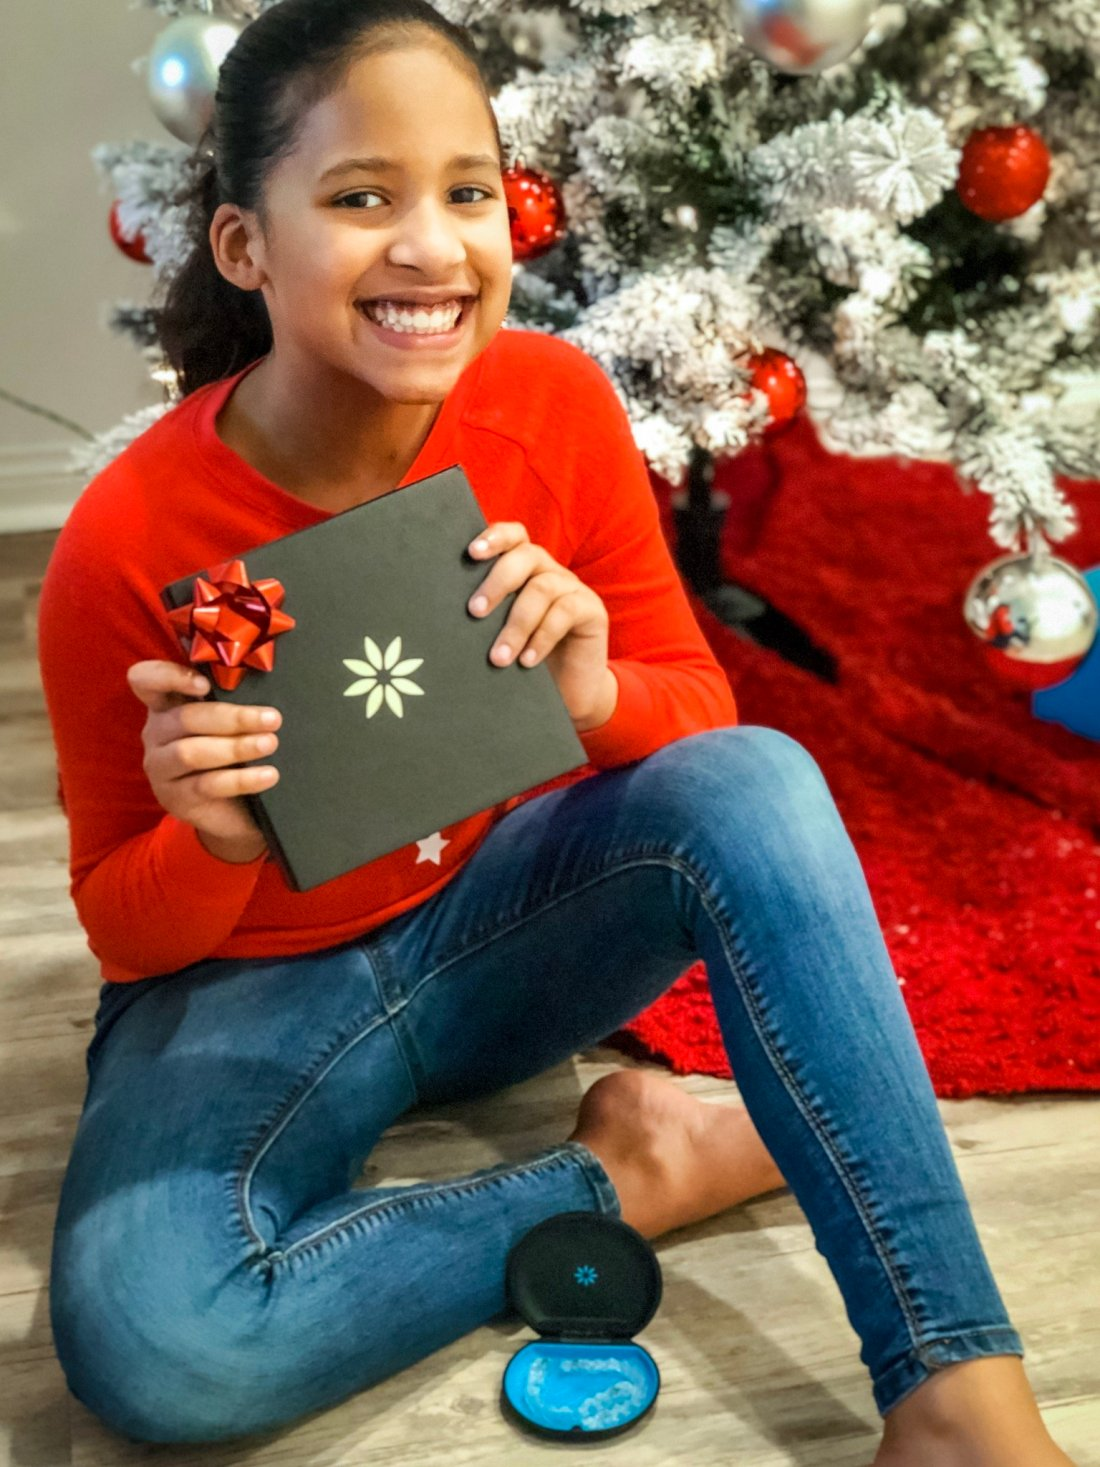 Give your child the gift of a perfect smile this Holiday season with Invisalign clear aligners.